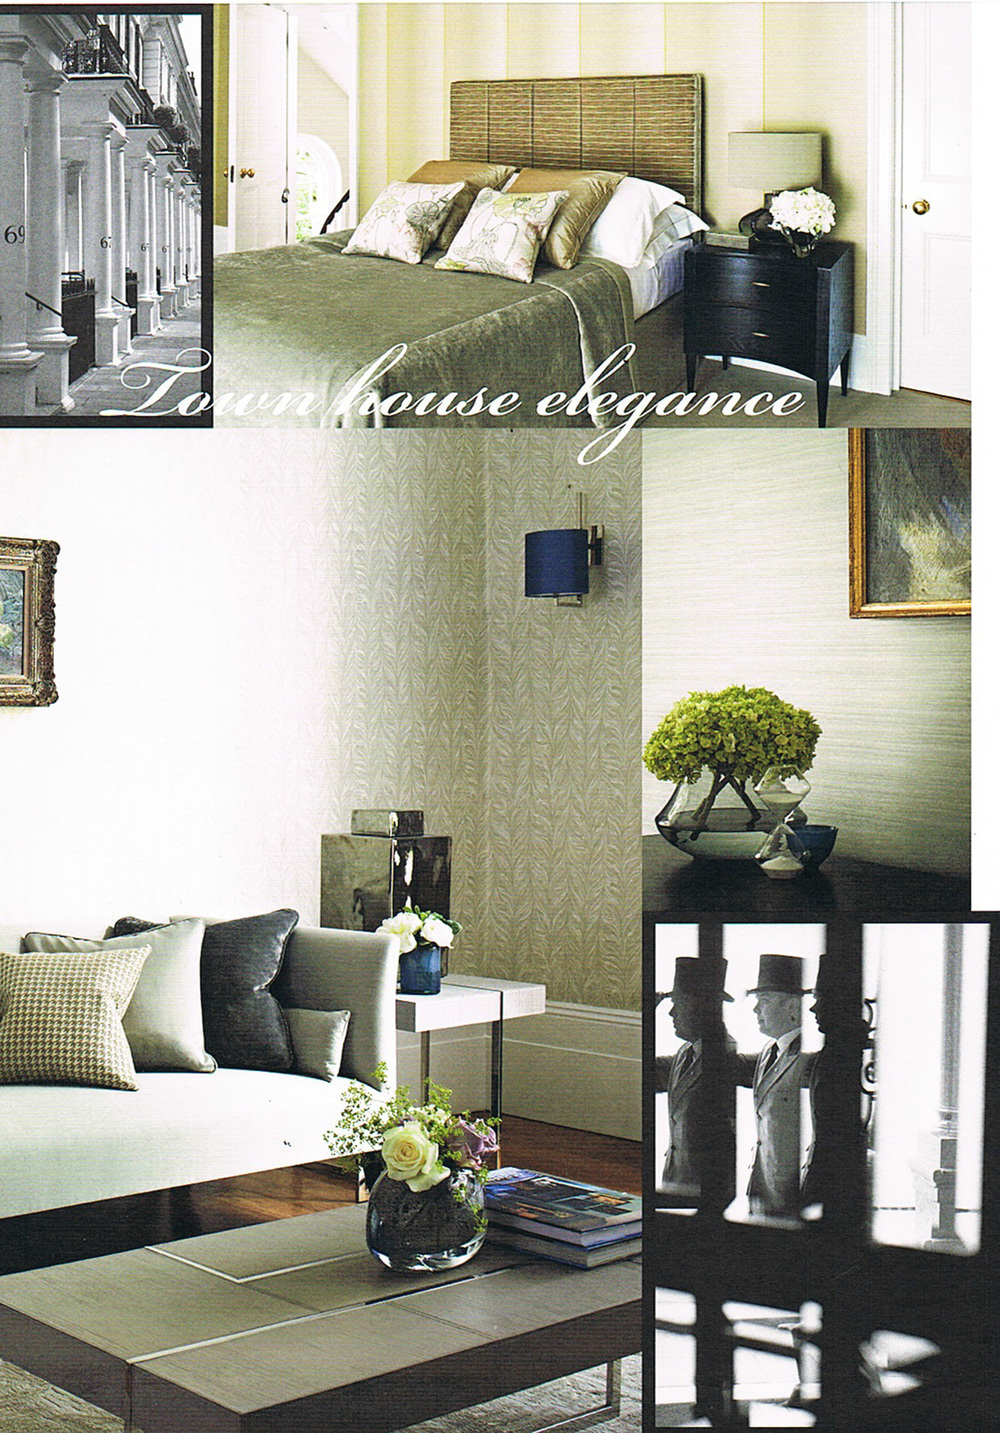 Town and country zoffany brochure- september 2012 web ready.jpg